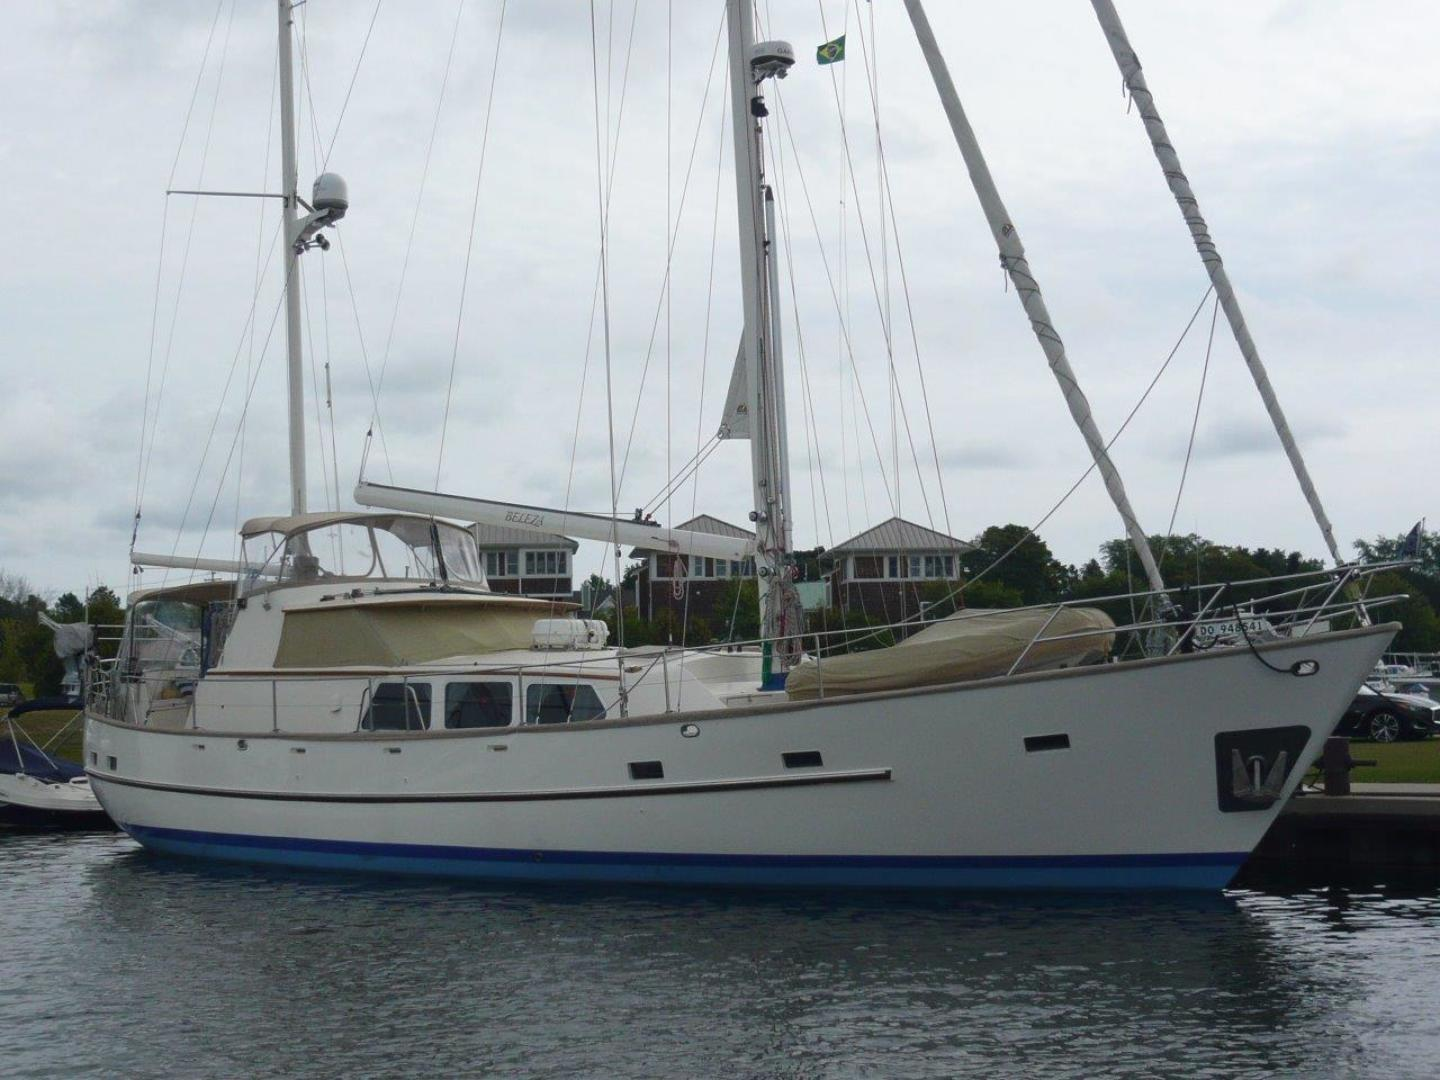 63' Cheoy Lee 1983 Pilothouse Motor Sailor Beleza